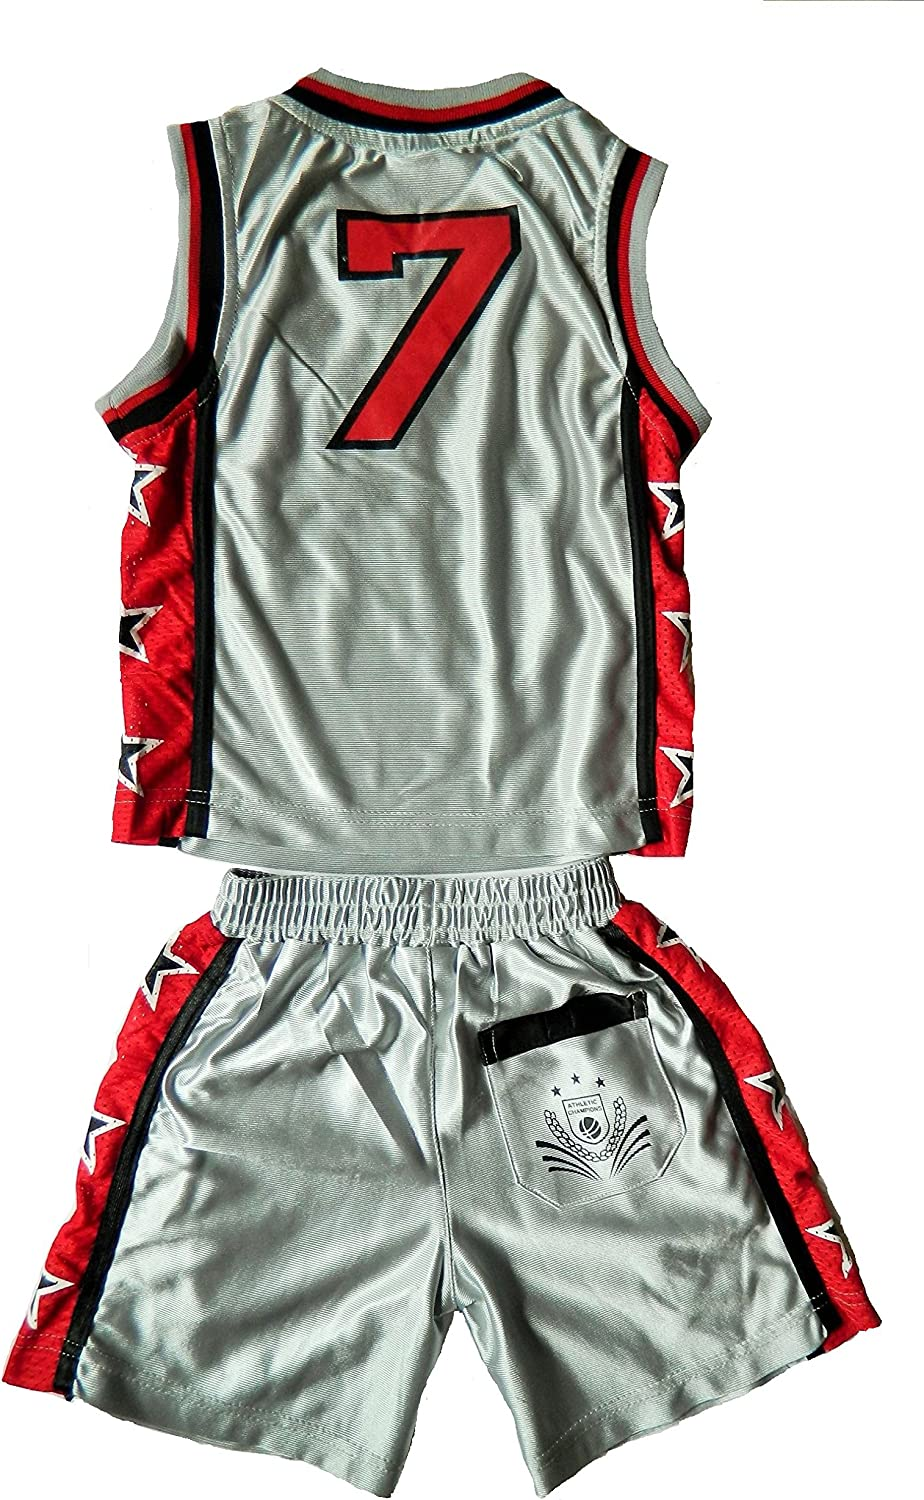 Chicago Santa Fe New York New Jersey Miami Texas Alter 6 Monate bis 12 Jahre Hawaii Olympia Fashion Oasis Kinder Jungen Basketball-Satz Boston